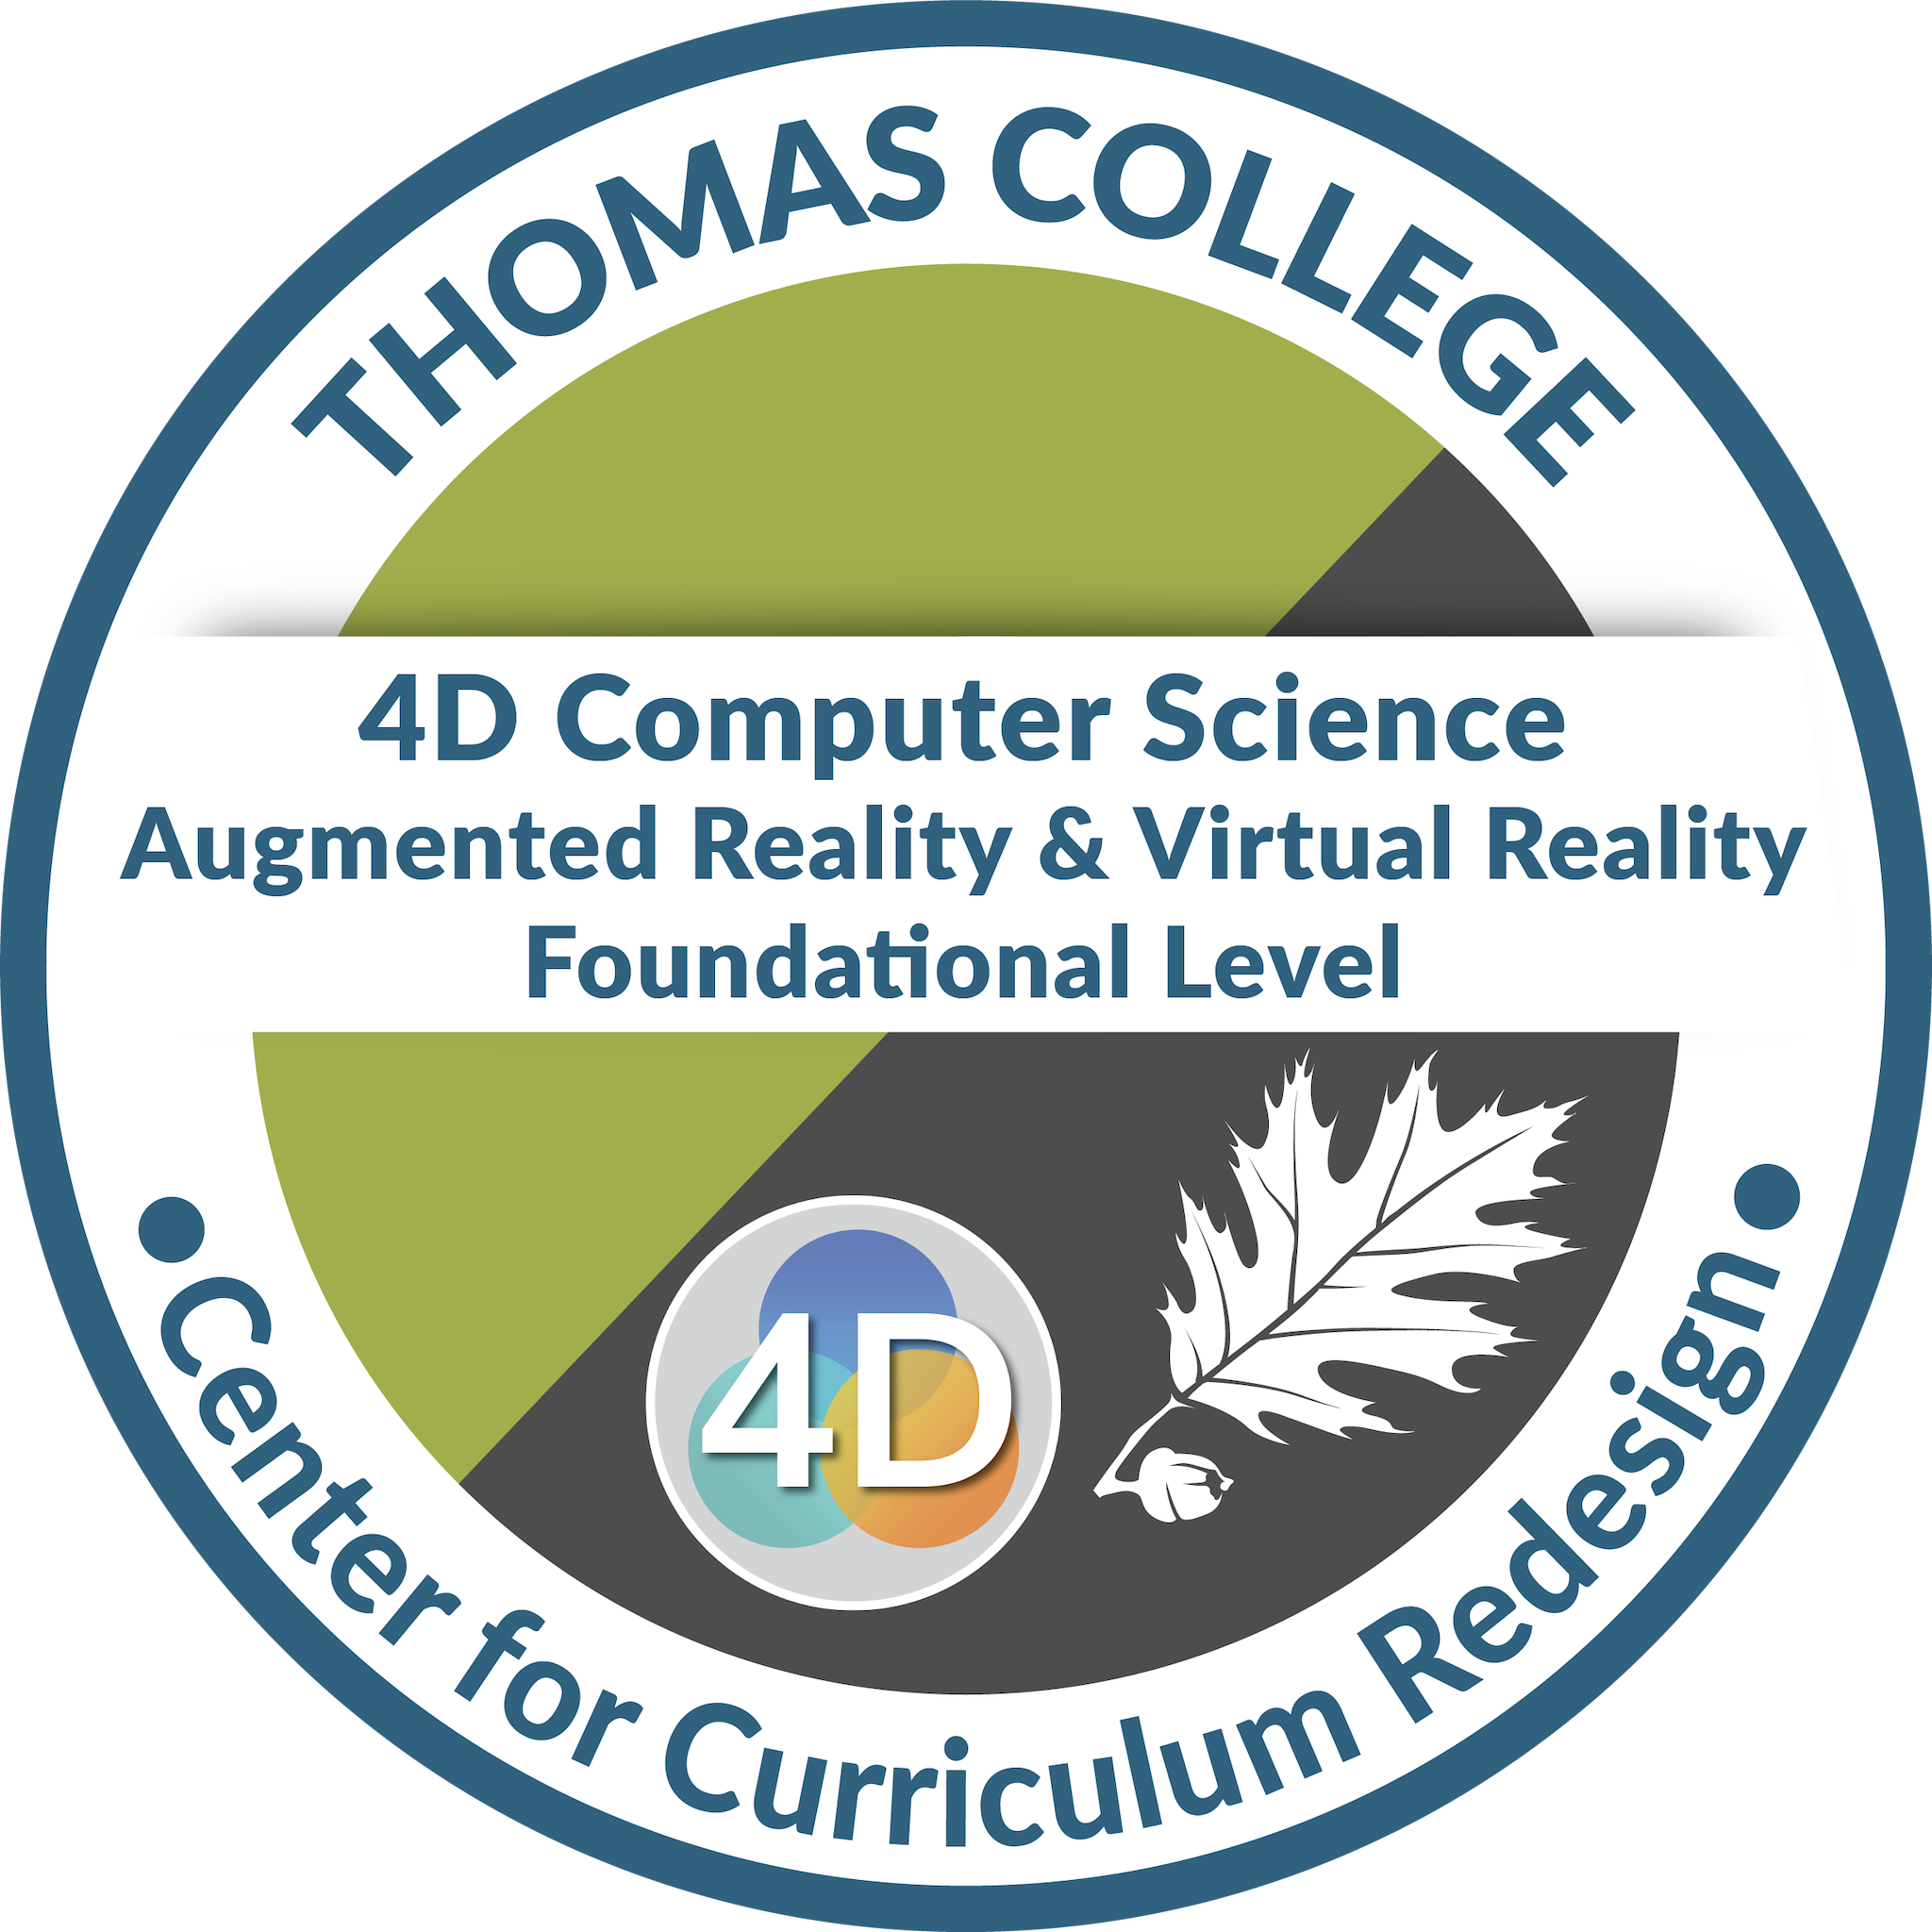 4D Computer Science: Augmented Reality & Virtual Reality